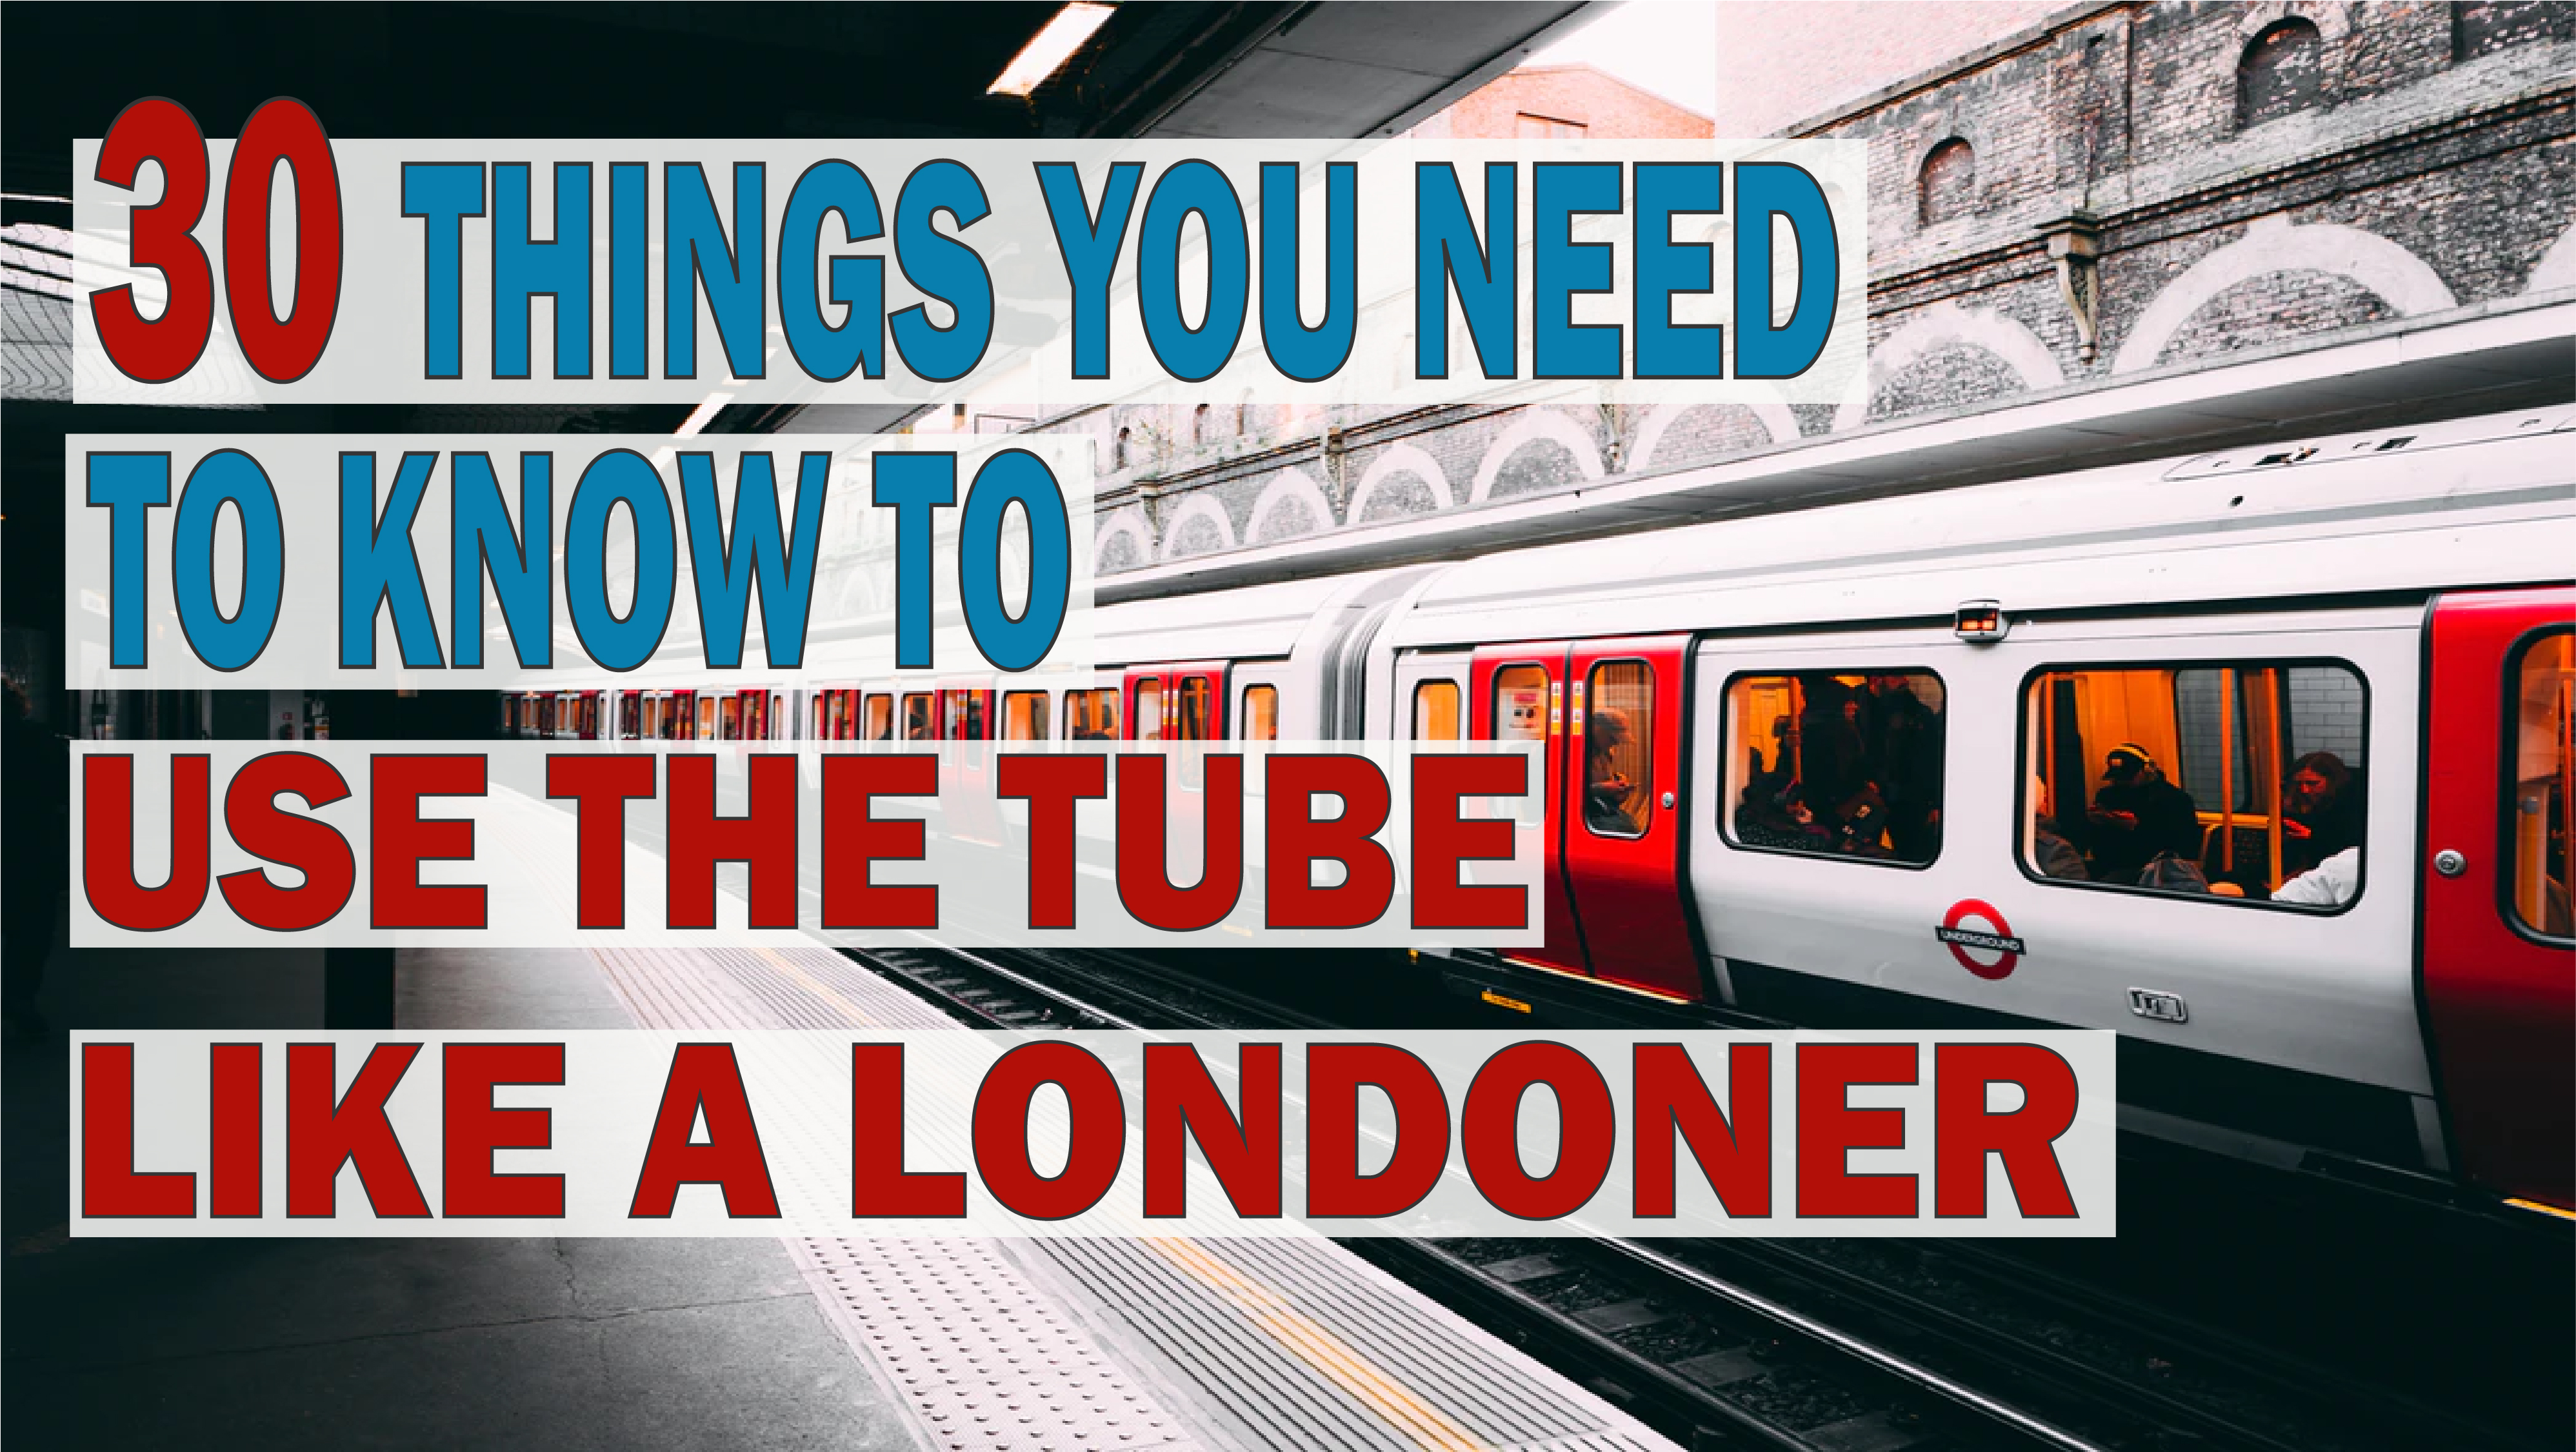 30 Things you need to know to use the Tube like a Londoner